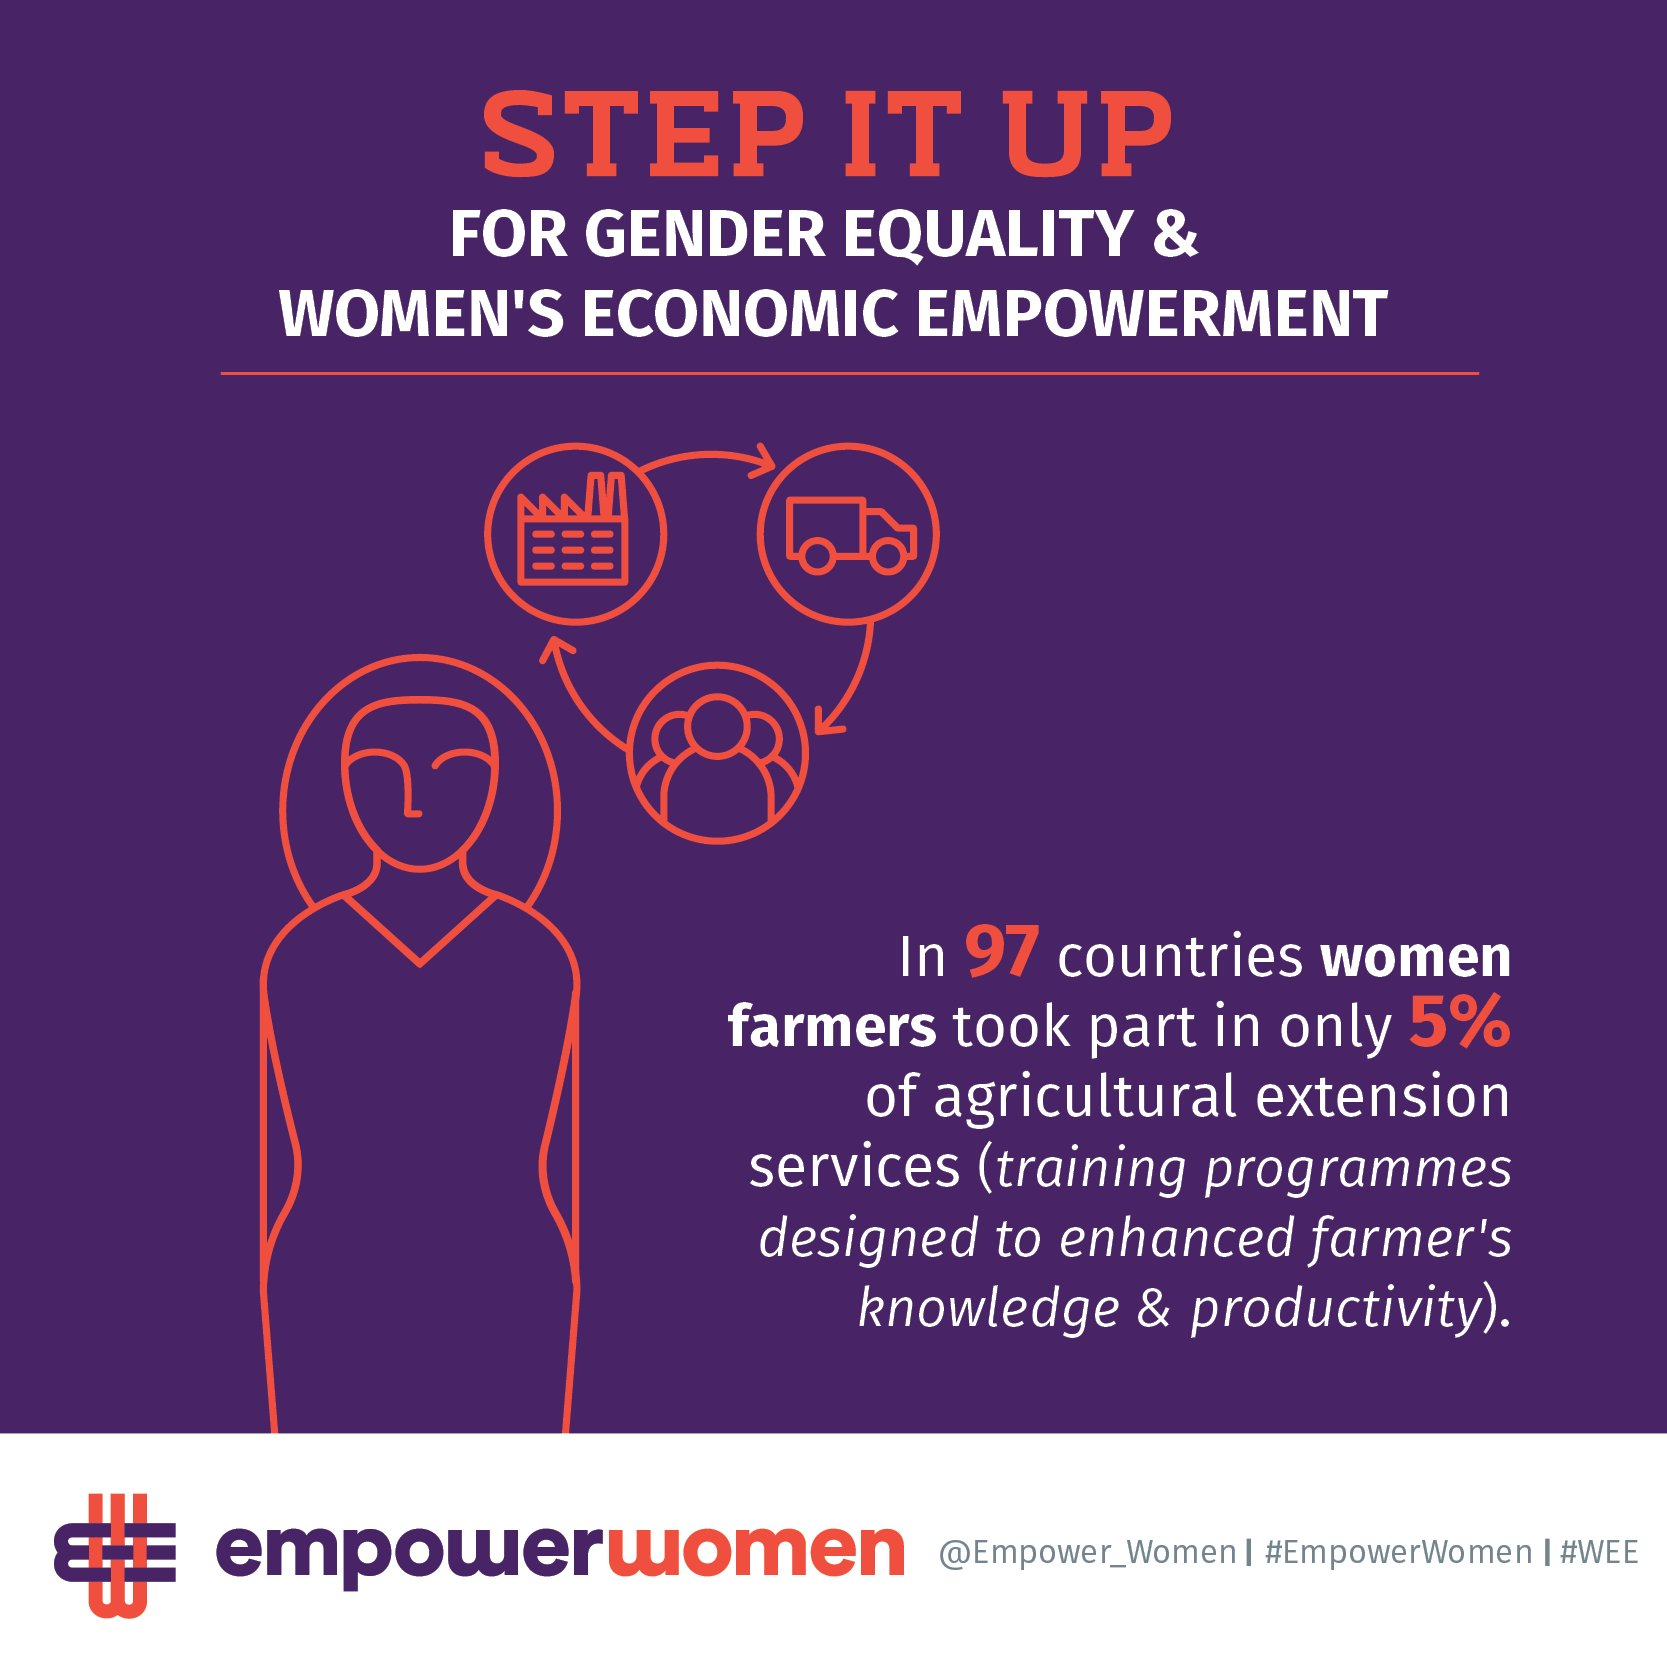 Let's step it up for women in agriculture. #EmpowerWomen to have full access to knowledge & training. @Empower_Women https://t.co/jvRoJ3NIJN